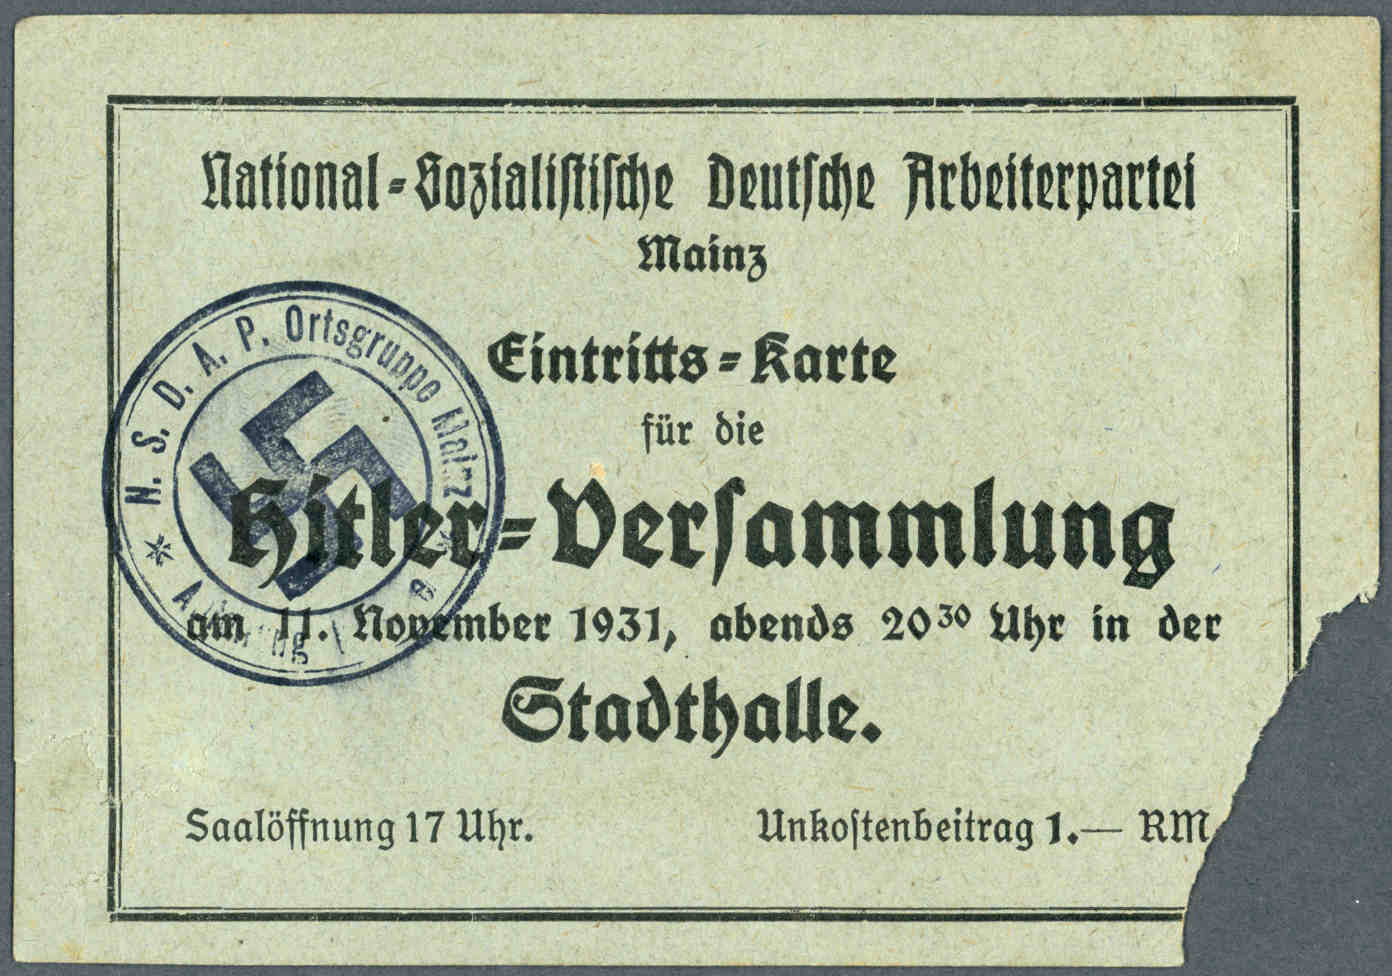 Ticket for a speech by Adolf Hitler in Mainz's Stadthalle in front of 20,000 participants